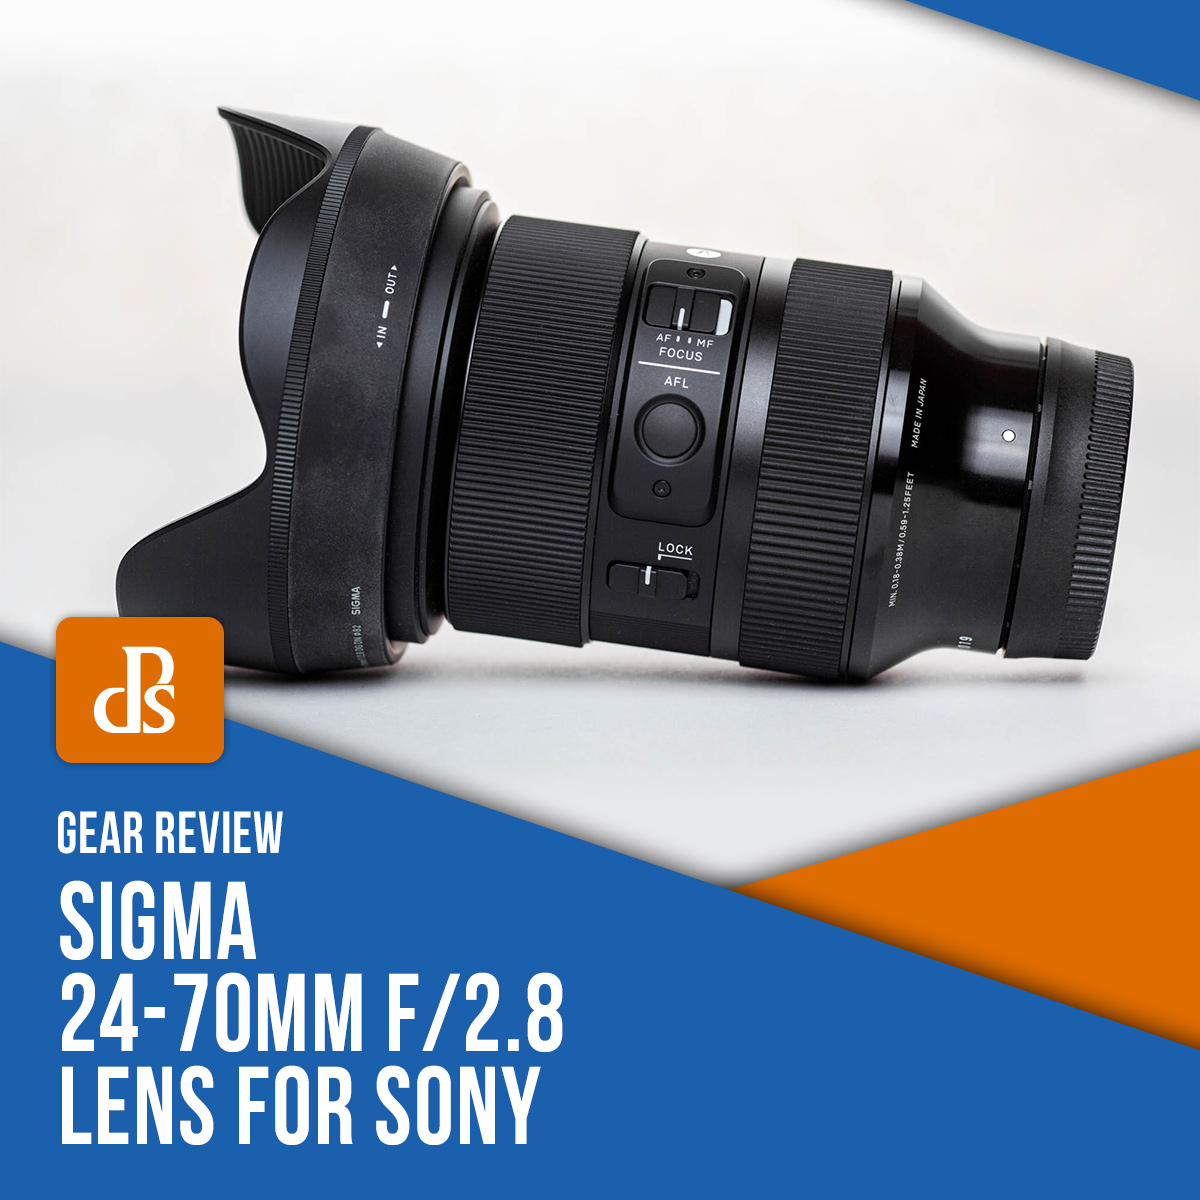 https://i0.wp.com/digital-photography-school.com/wp-content/uploads/2020/06/dps-sigma-24-70-f2-8-lens-review.jpg?ssl=1